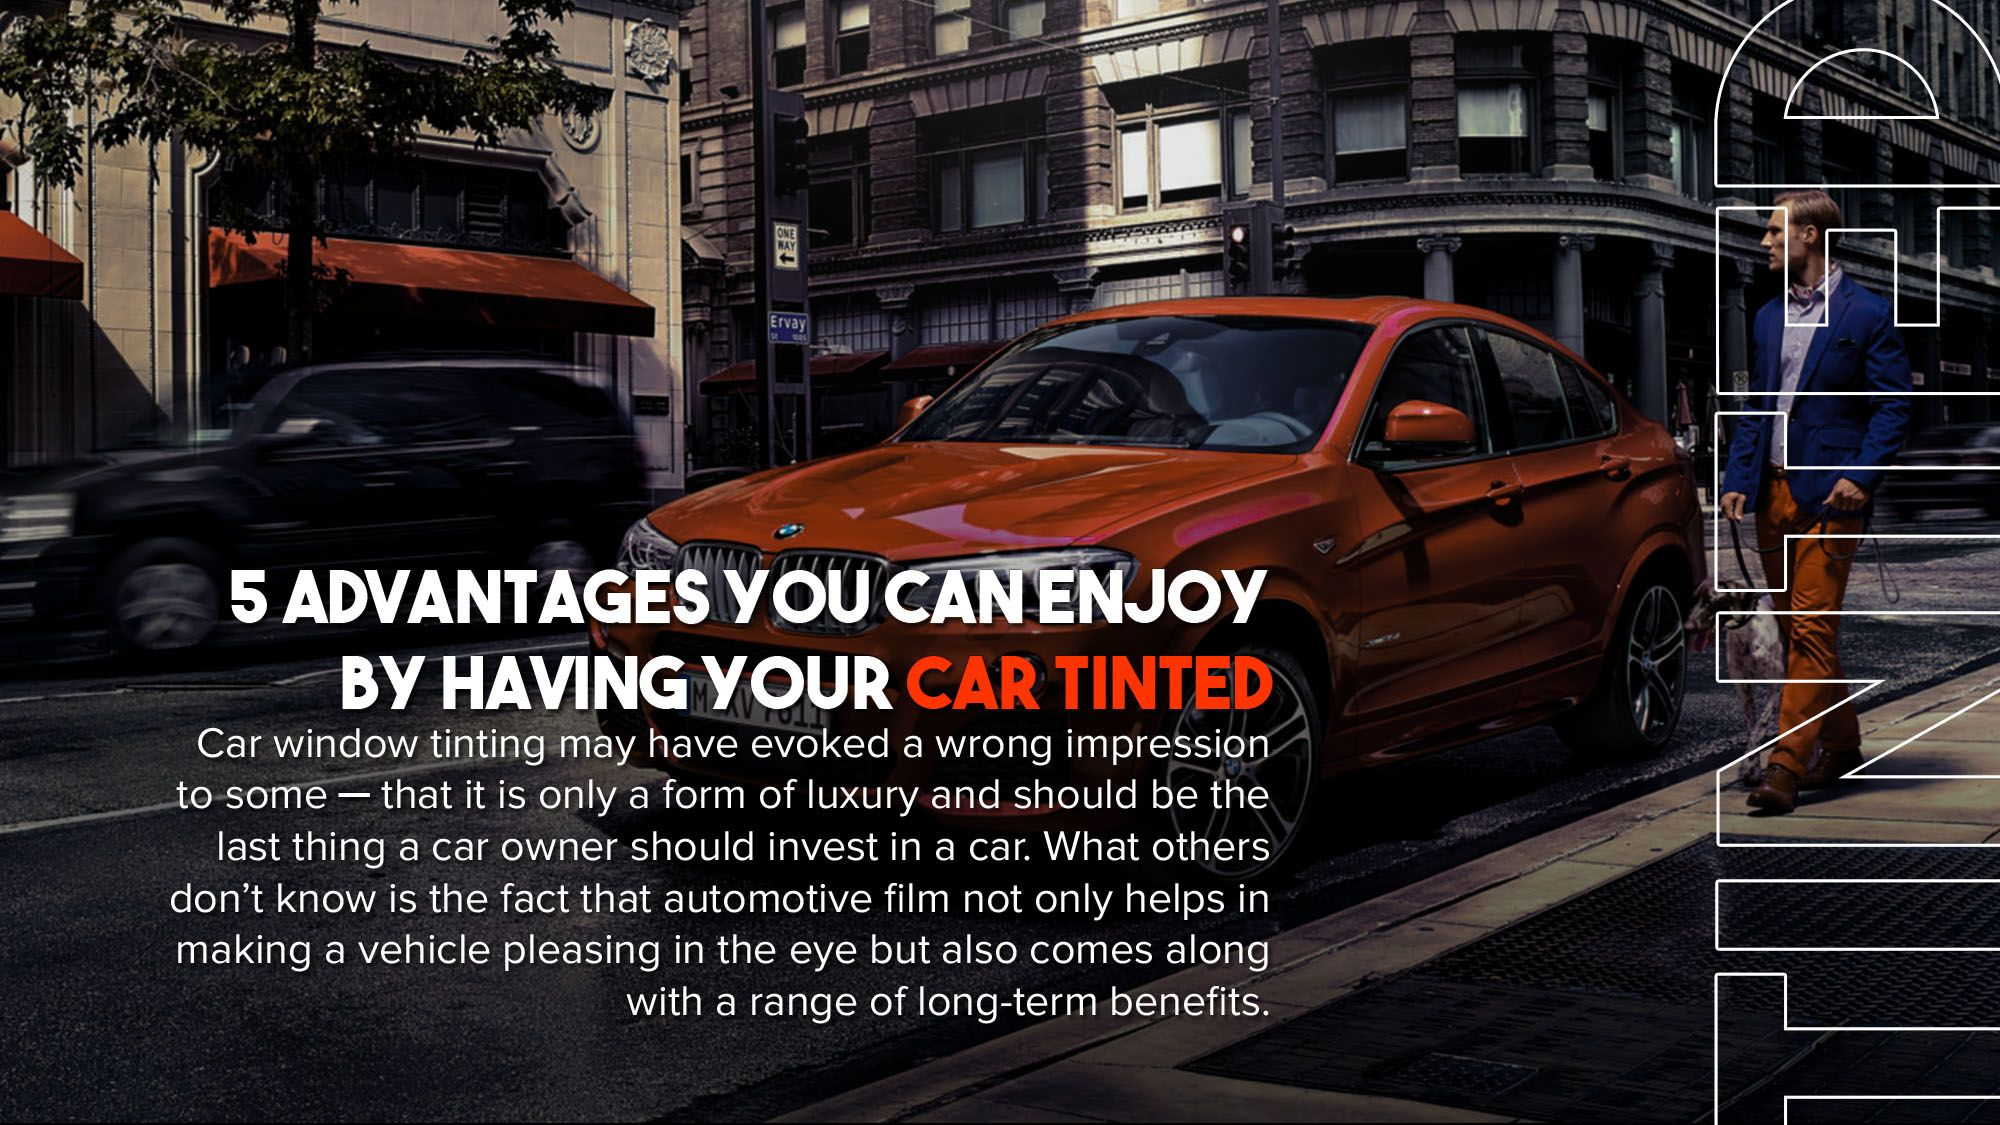 5 Advantages You Can Enjoy by Having Your Car Tinted Car